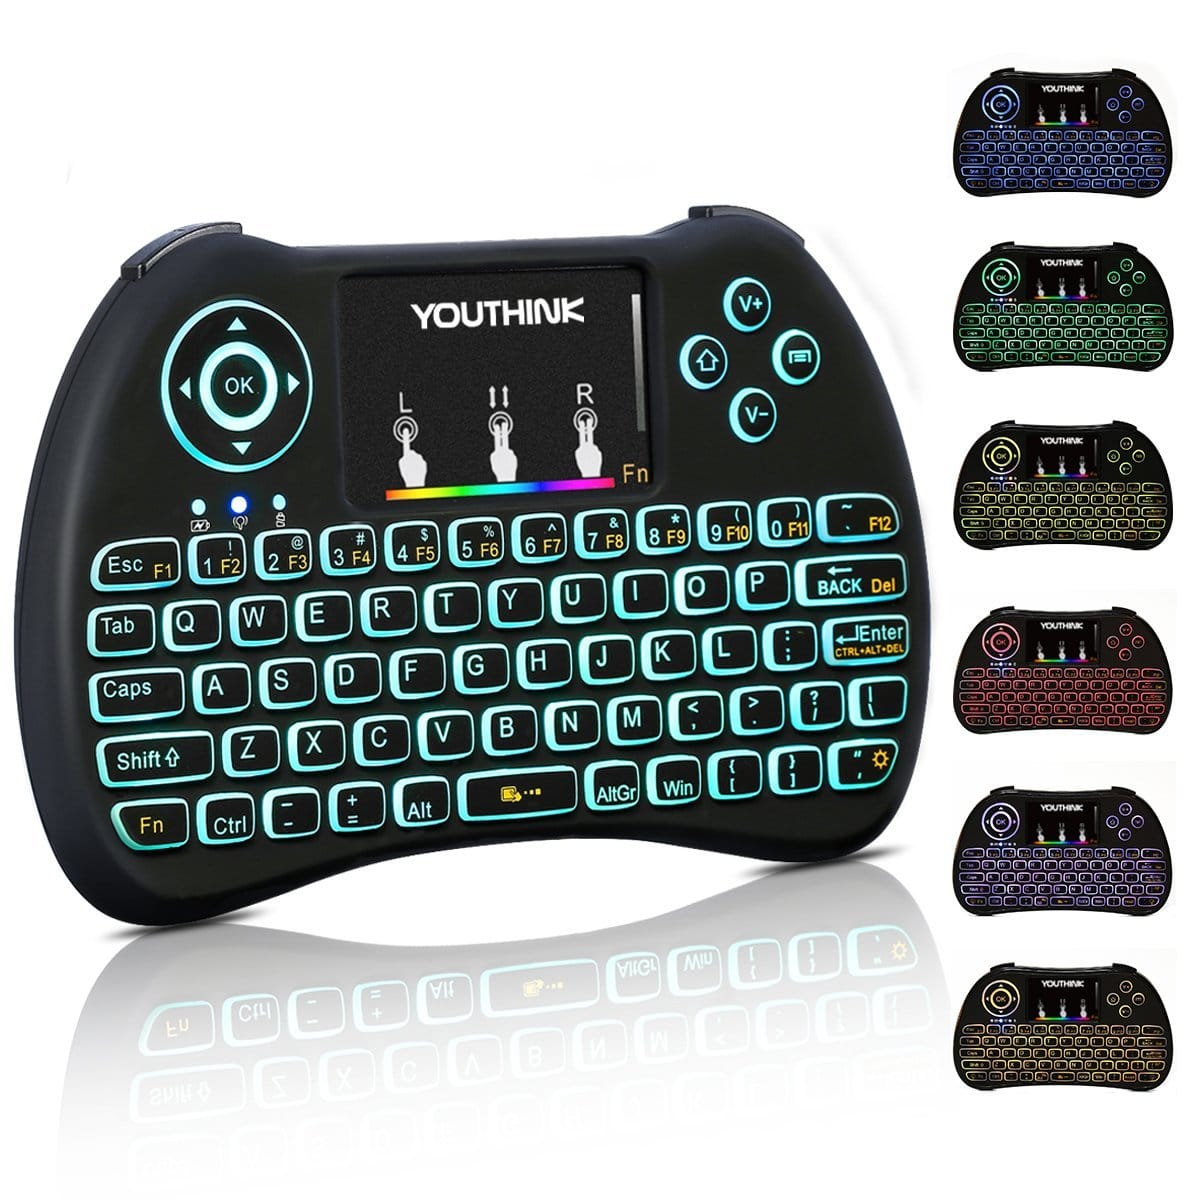 Mini Backlit Keyboard Remote with Touchpad 2.4ghz $10.98